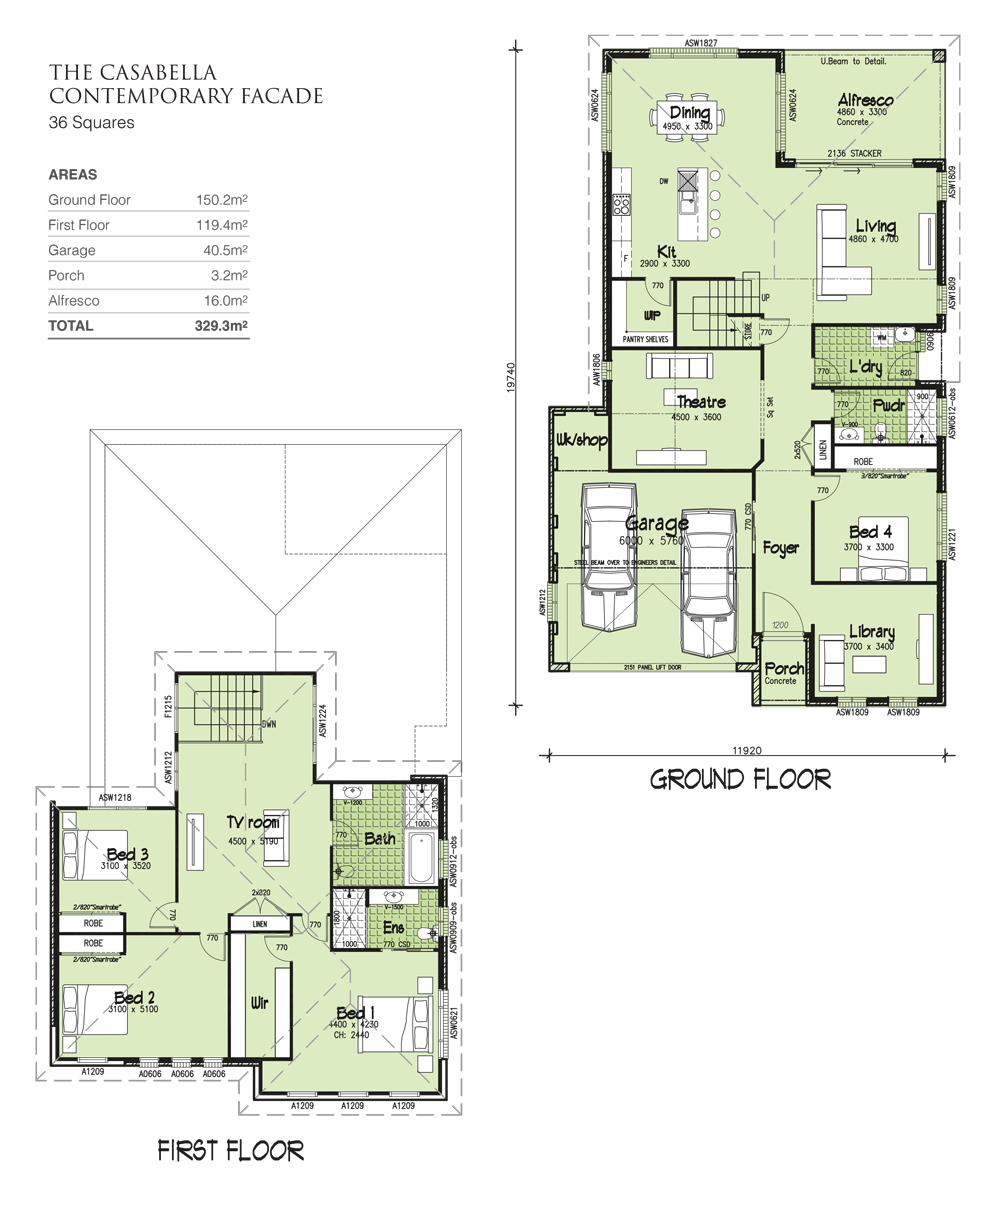 Casabella, Home Design, Tullipan Homes